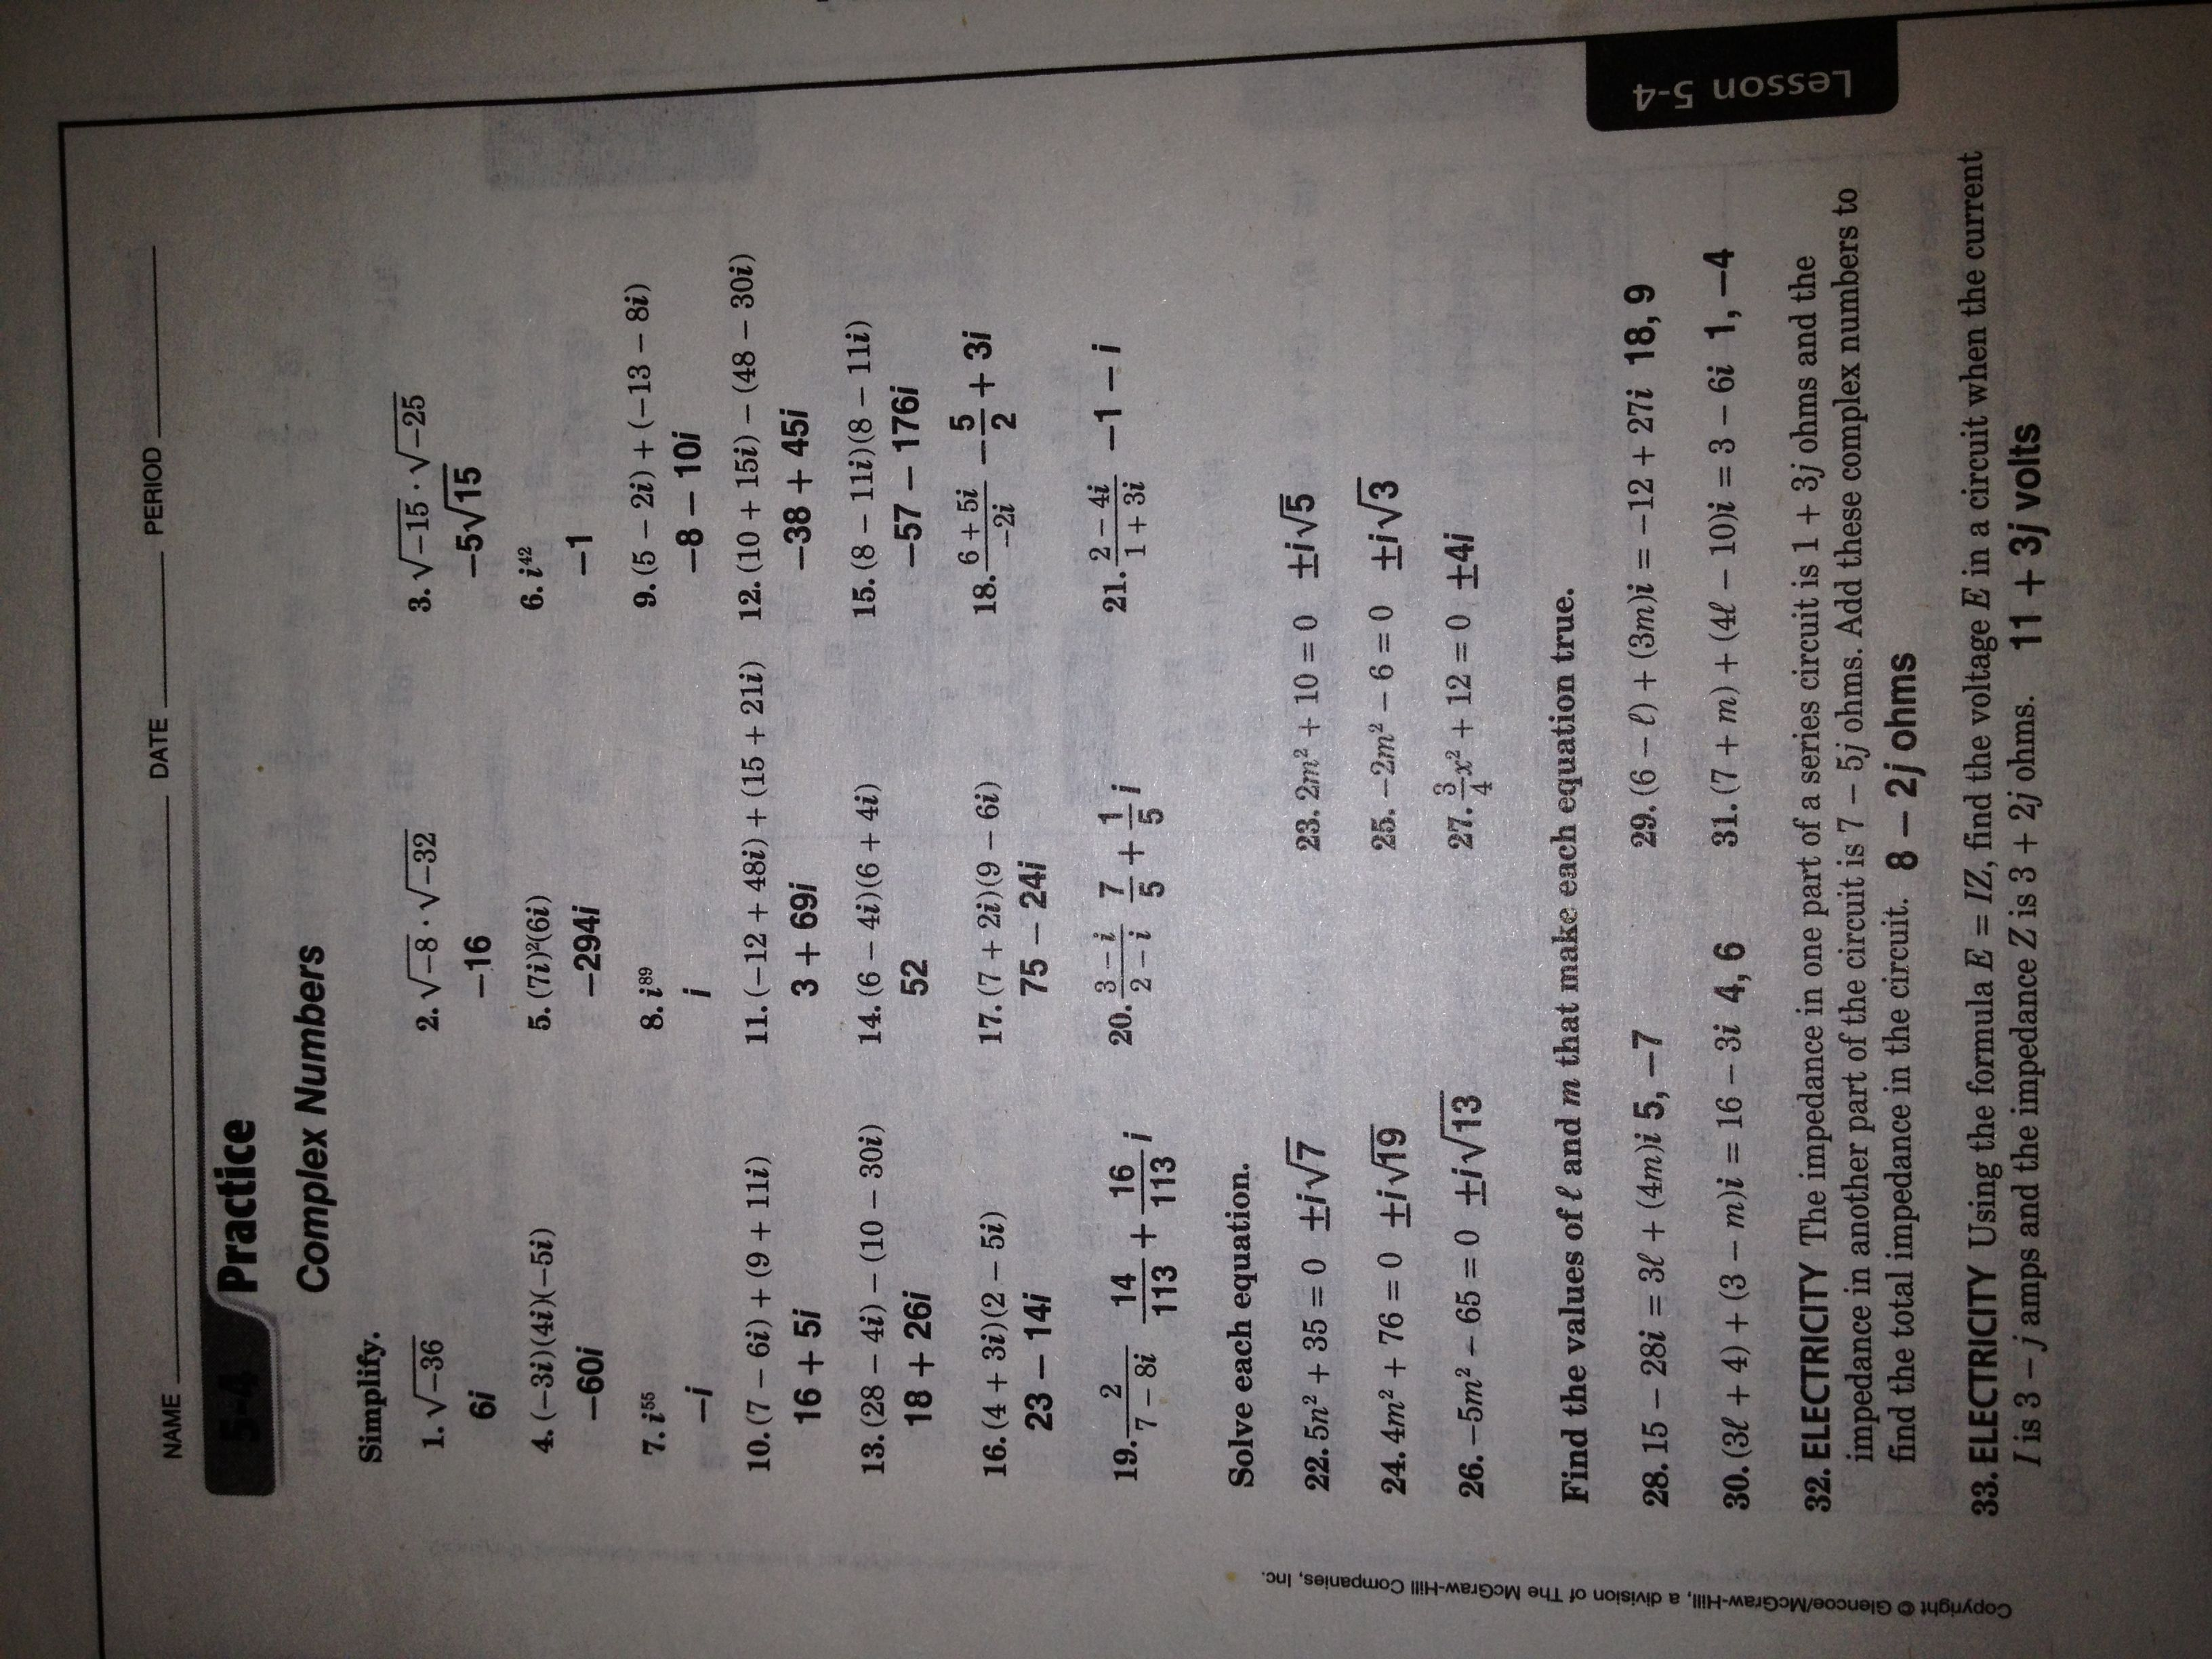 Worksheets Holt Mcdougal Mathematics Worksheets holt mcdougal mathematics homework help ssays for sale solver also with geometry worksheets algebra 1 worksheet answers